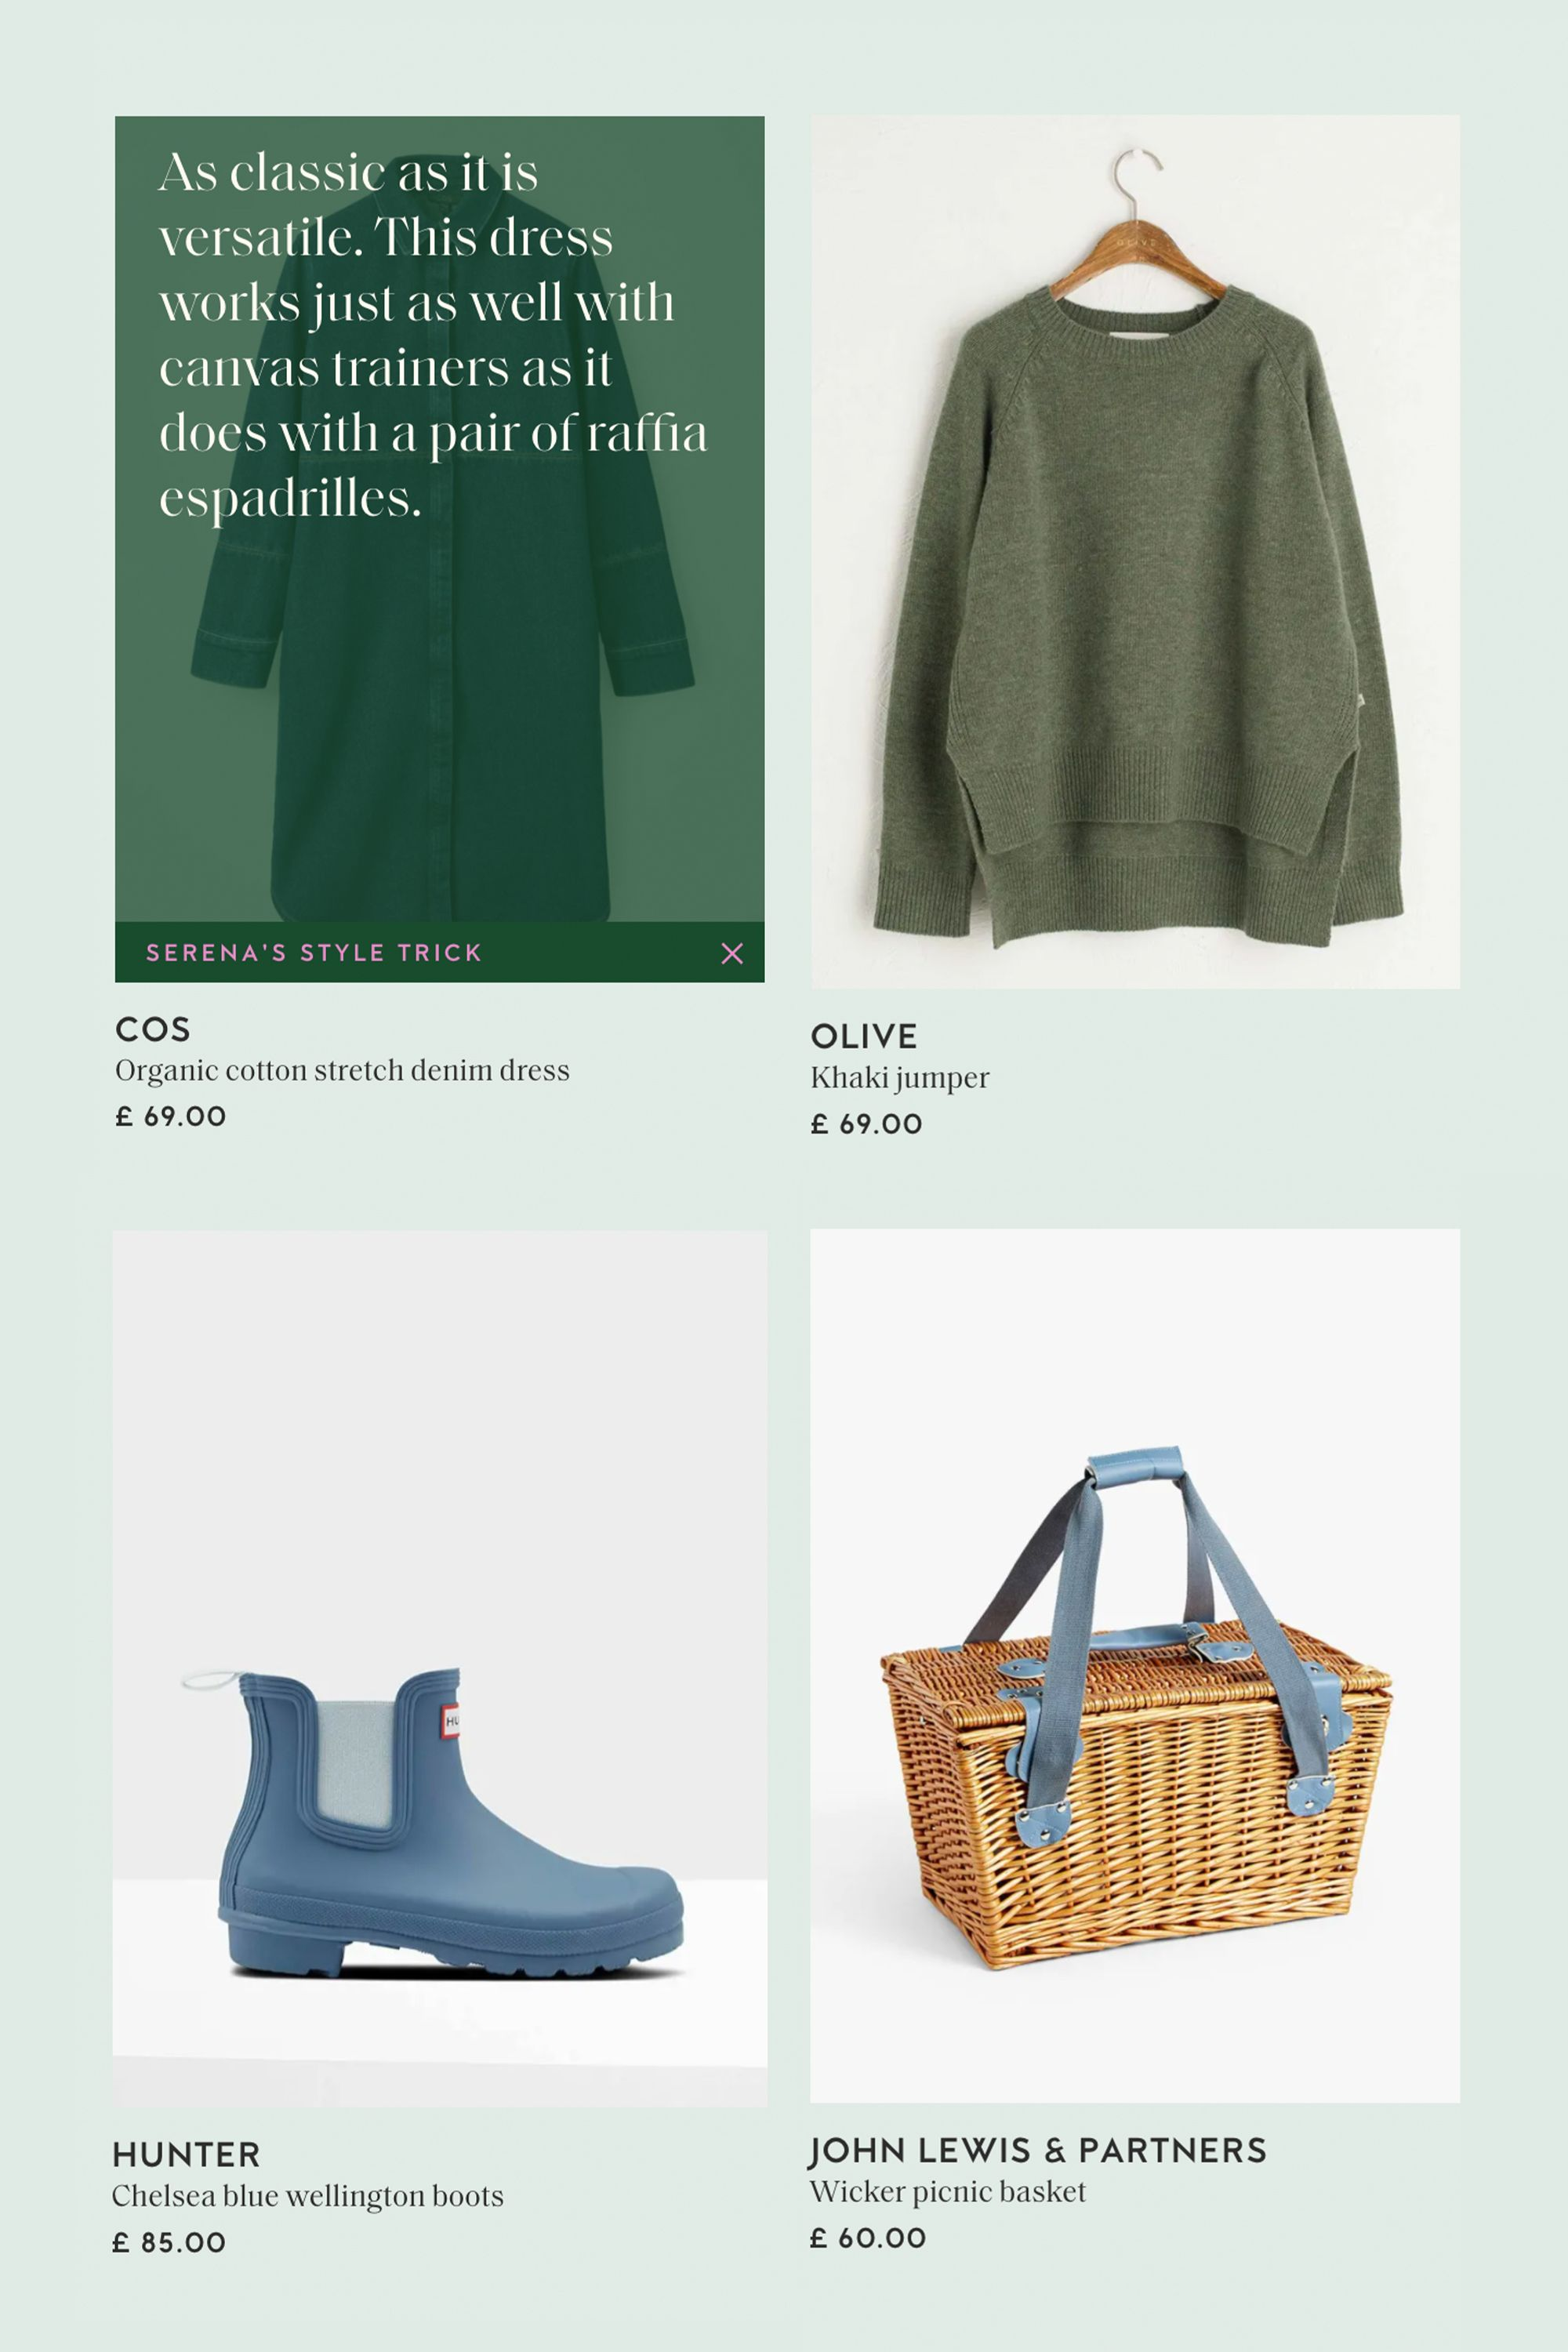 Collagerie website design showing shoppable product grid